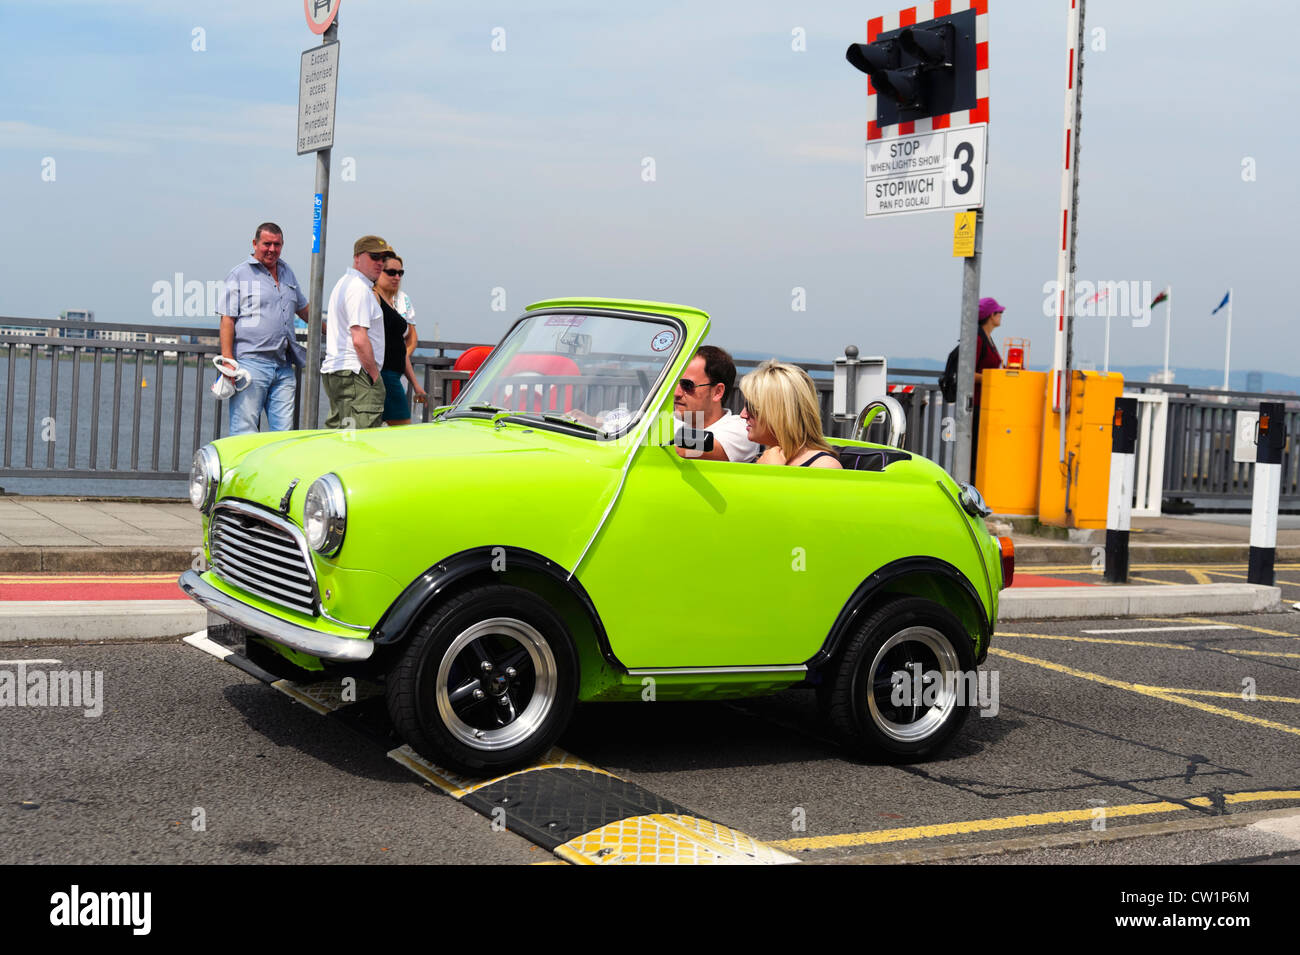 Classic mini car driving over a sleeping policeman speed bump on the Cardiff Bay Barrage, South Wales, UK. - Stock Image